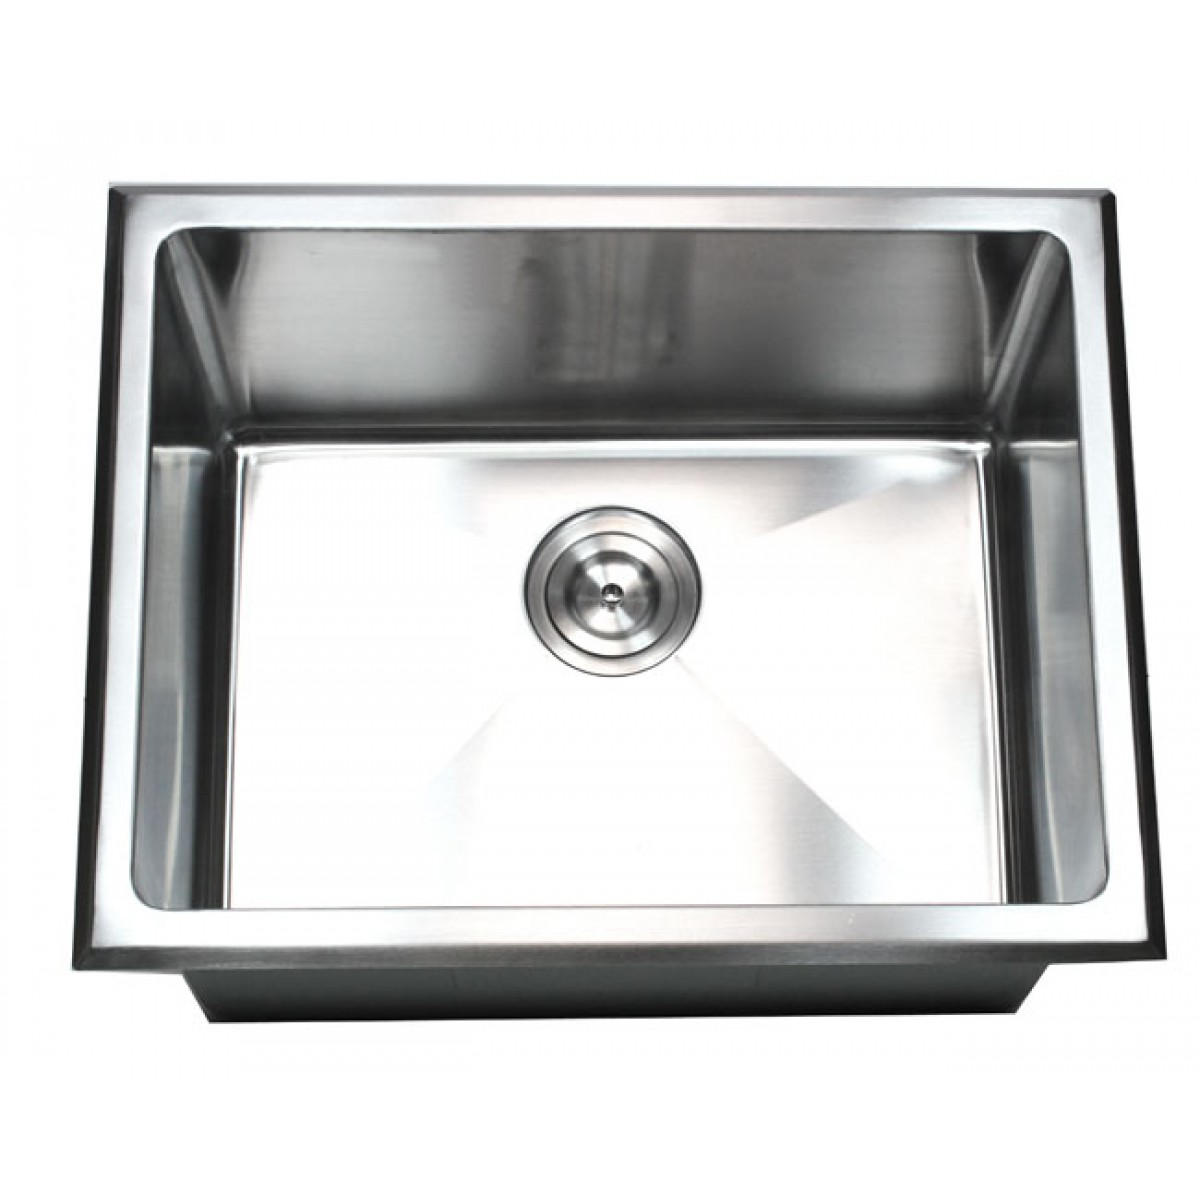 Stainless Steel Utility Sink Drop In : Inch Drop-In Stainless Steel Single Bowl Kitchen / Utility / Laundry ...